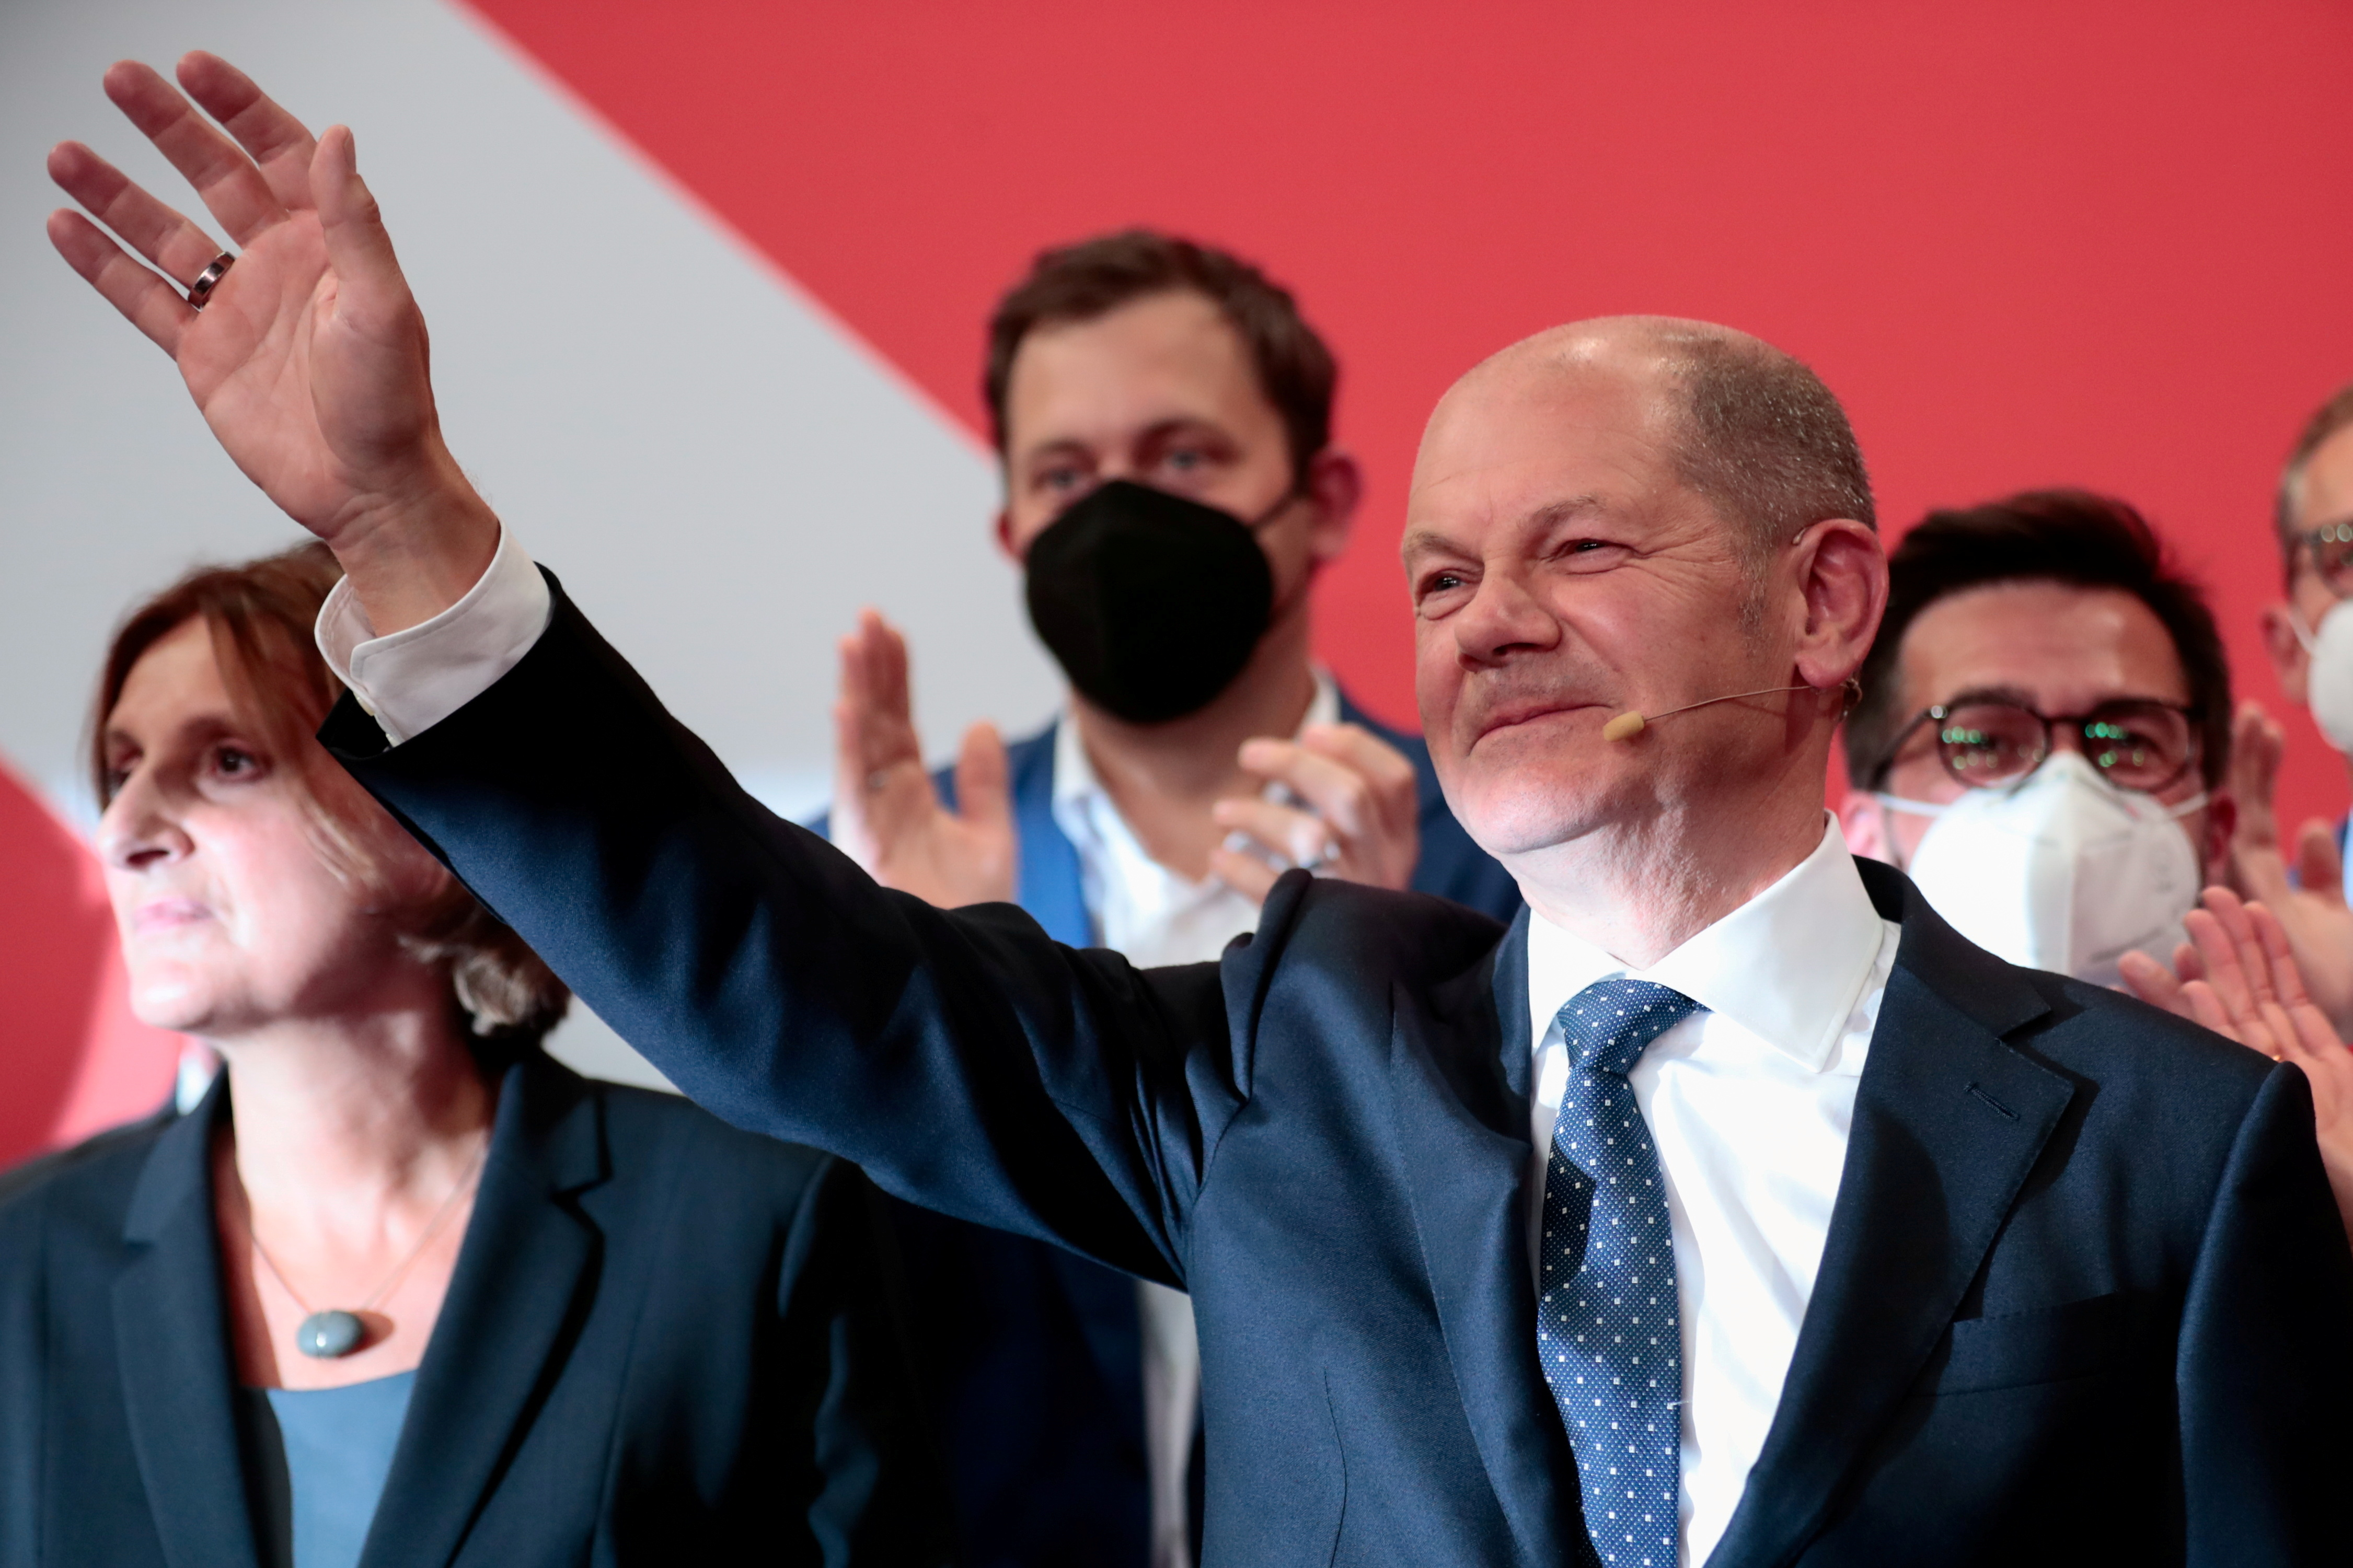 Social Democratic Party (SPD) top candidate for chancellor Olaf Scholz waves after first exit polls for the general elections in Berlin, Germany, September 26, 2021.    REUTERS/Hannibal Hanschke